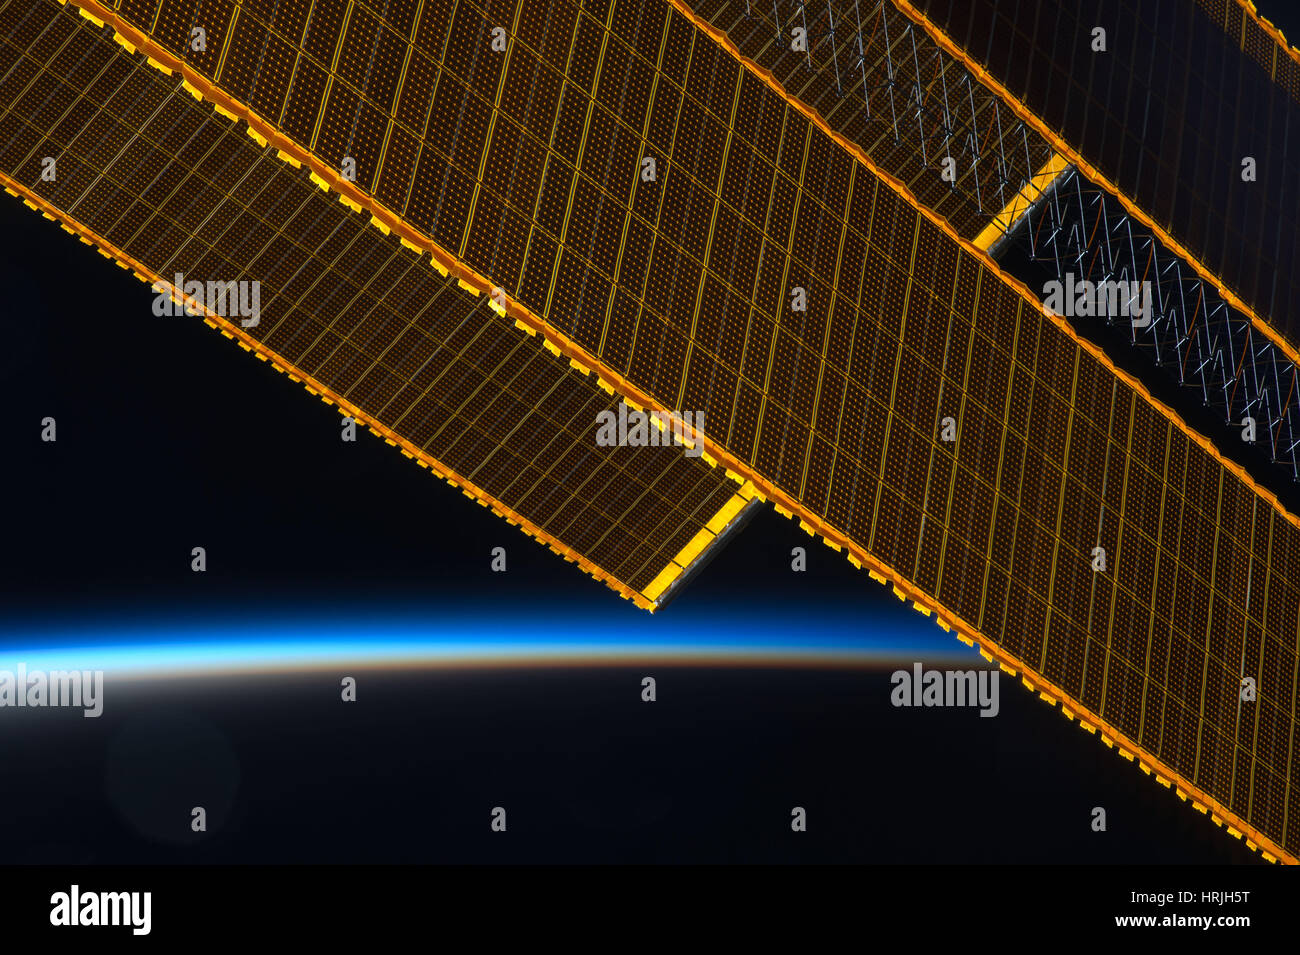 Expedition 40, Solar Array Wings on ISS, 2014 - Stock Image